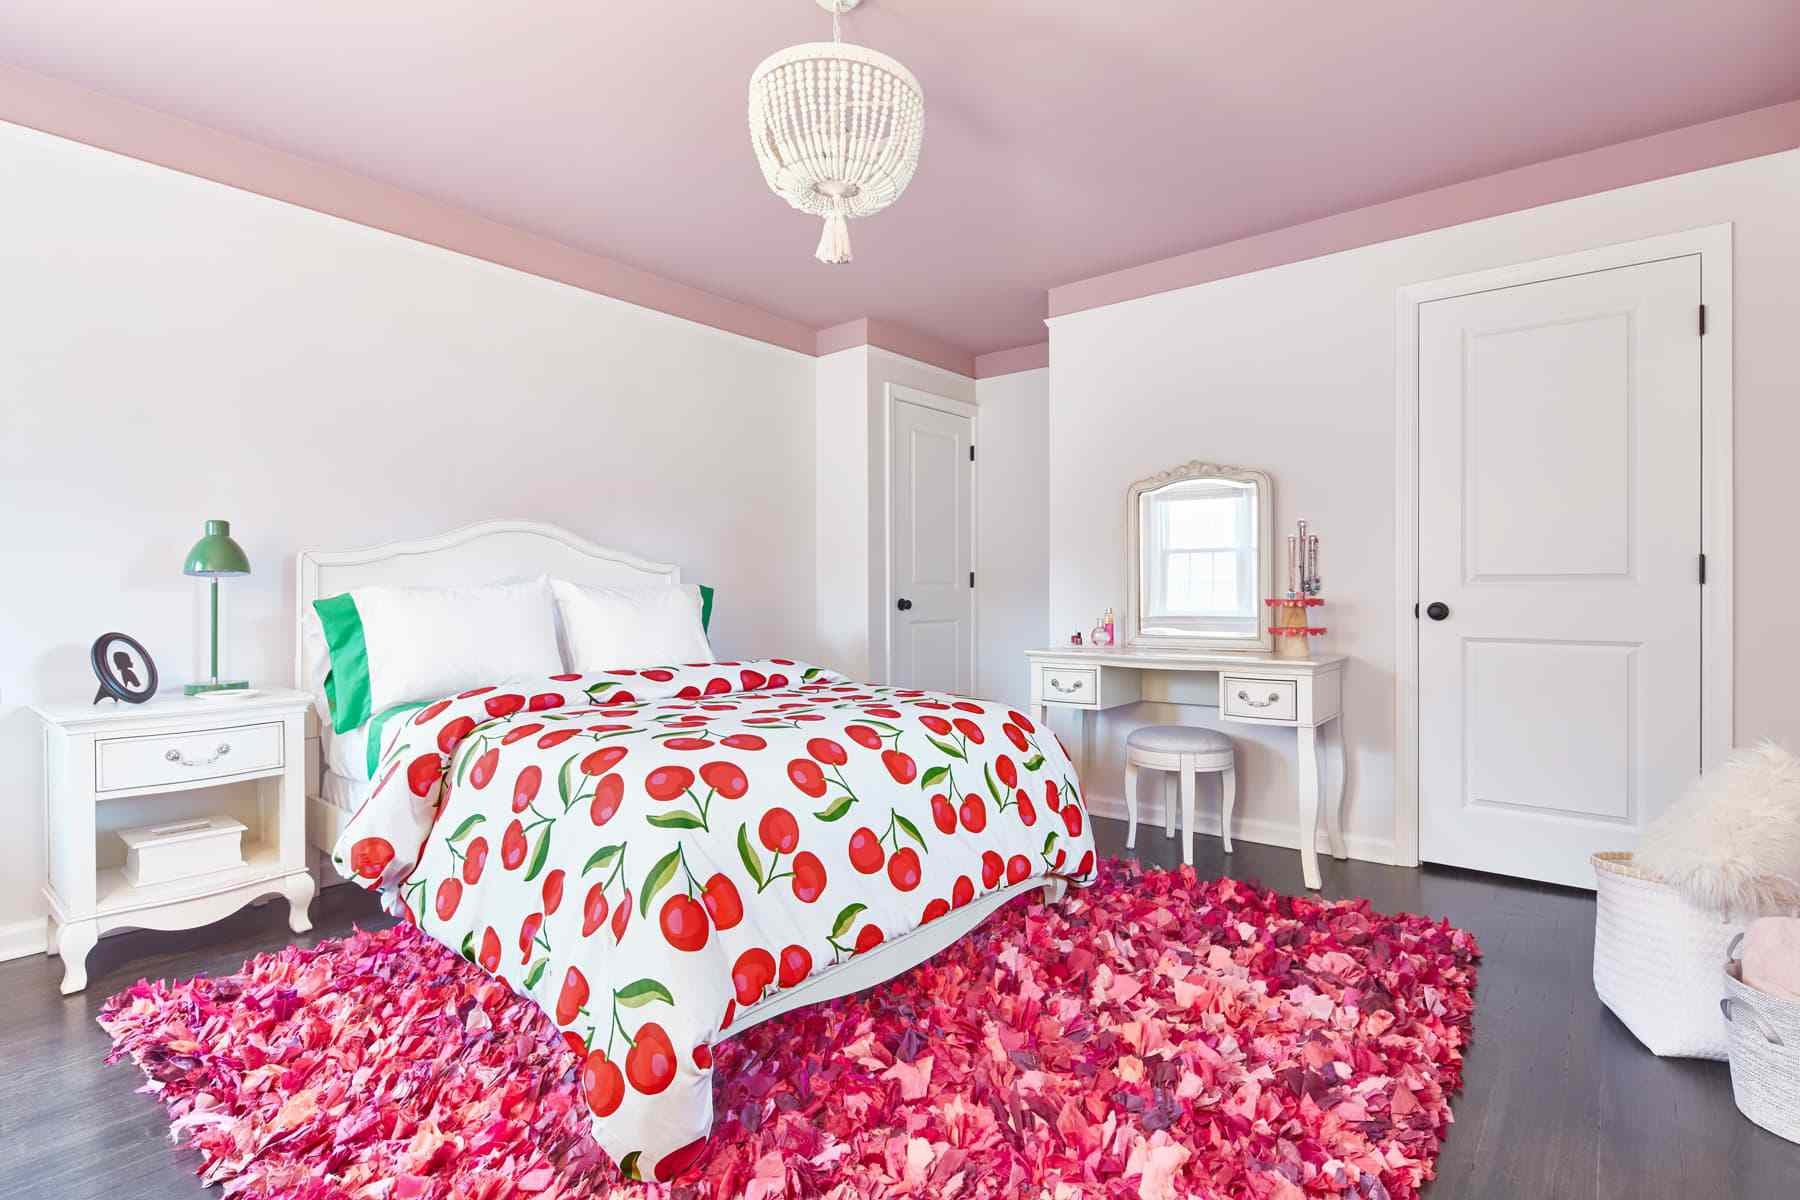 bedroom with white walls, a cherry printed bedspread, bright green pillows and bedside table lamp,